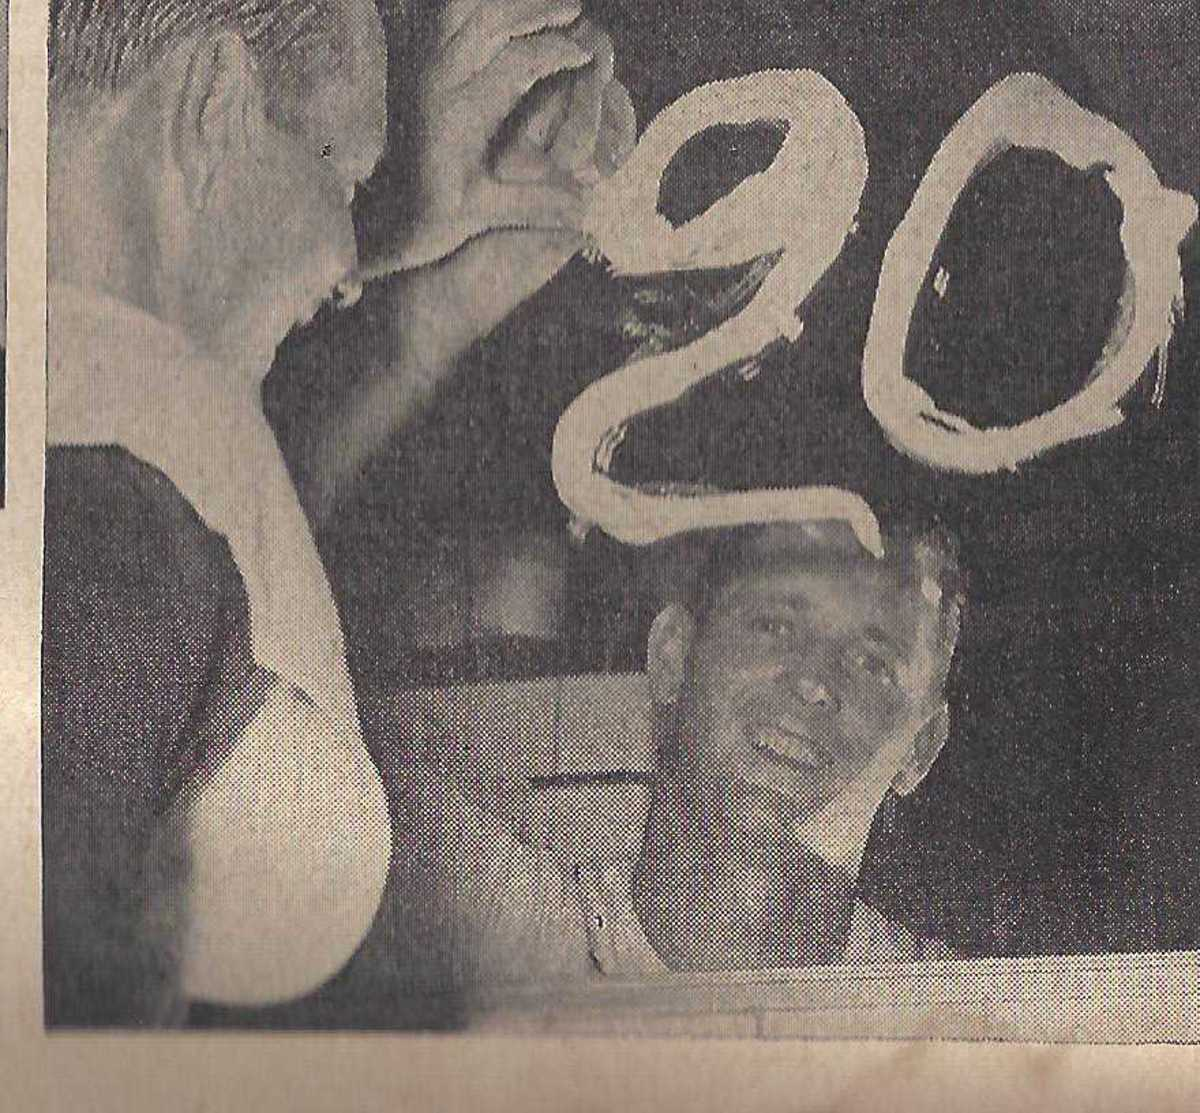 Frank Lary after his 20th win with the Detroit Tigers.